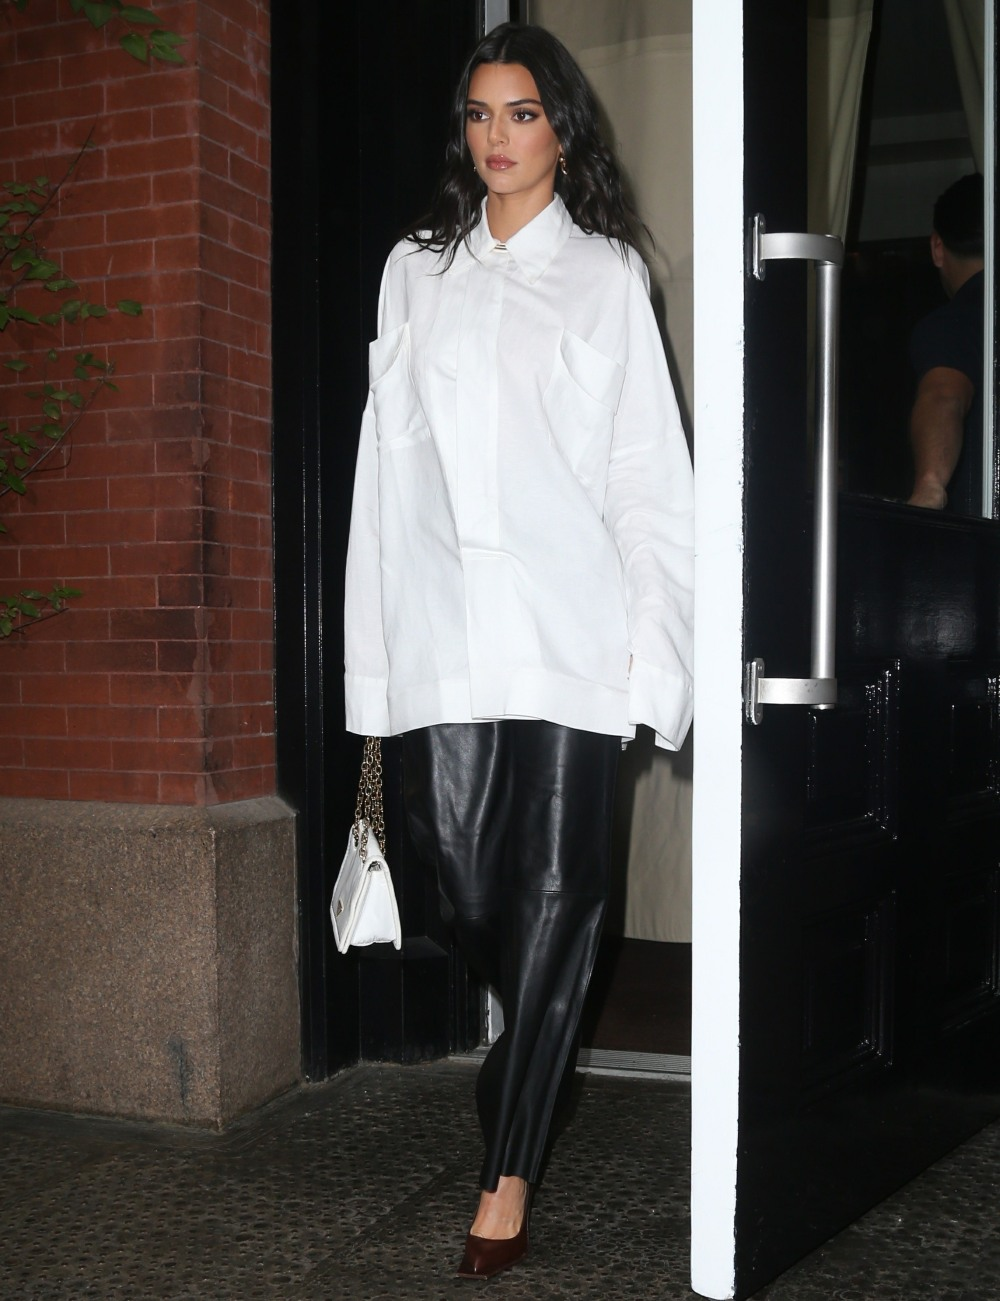 Kendall Jenner heads to 'The Tonight Show with Jimmy Fallon' in NYC